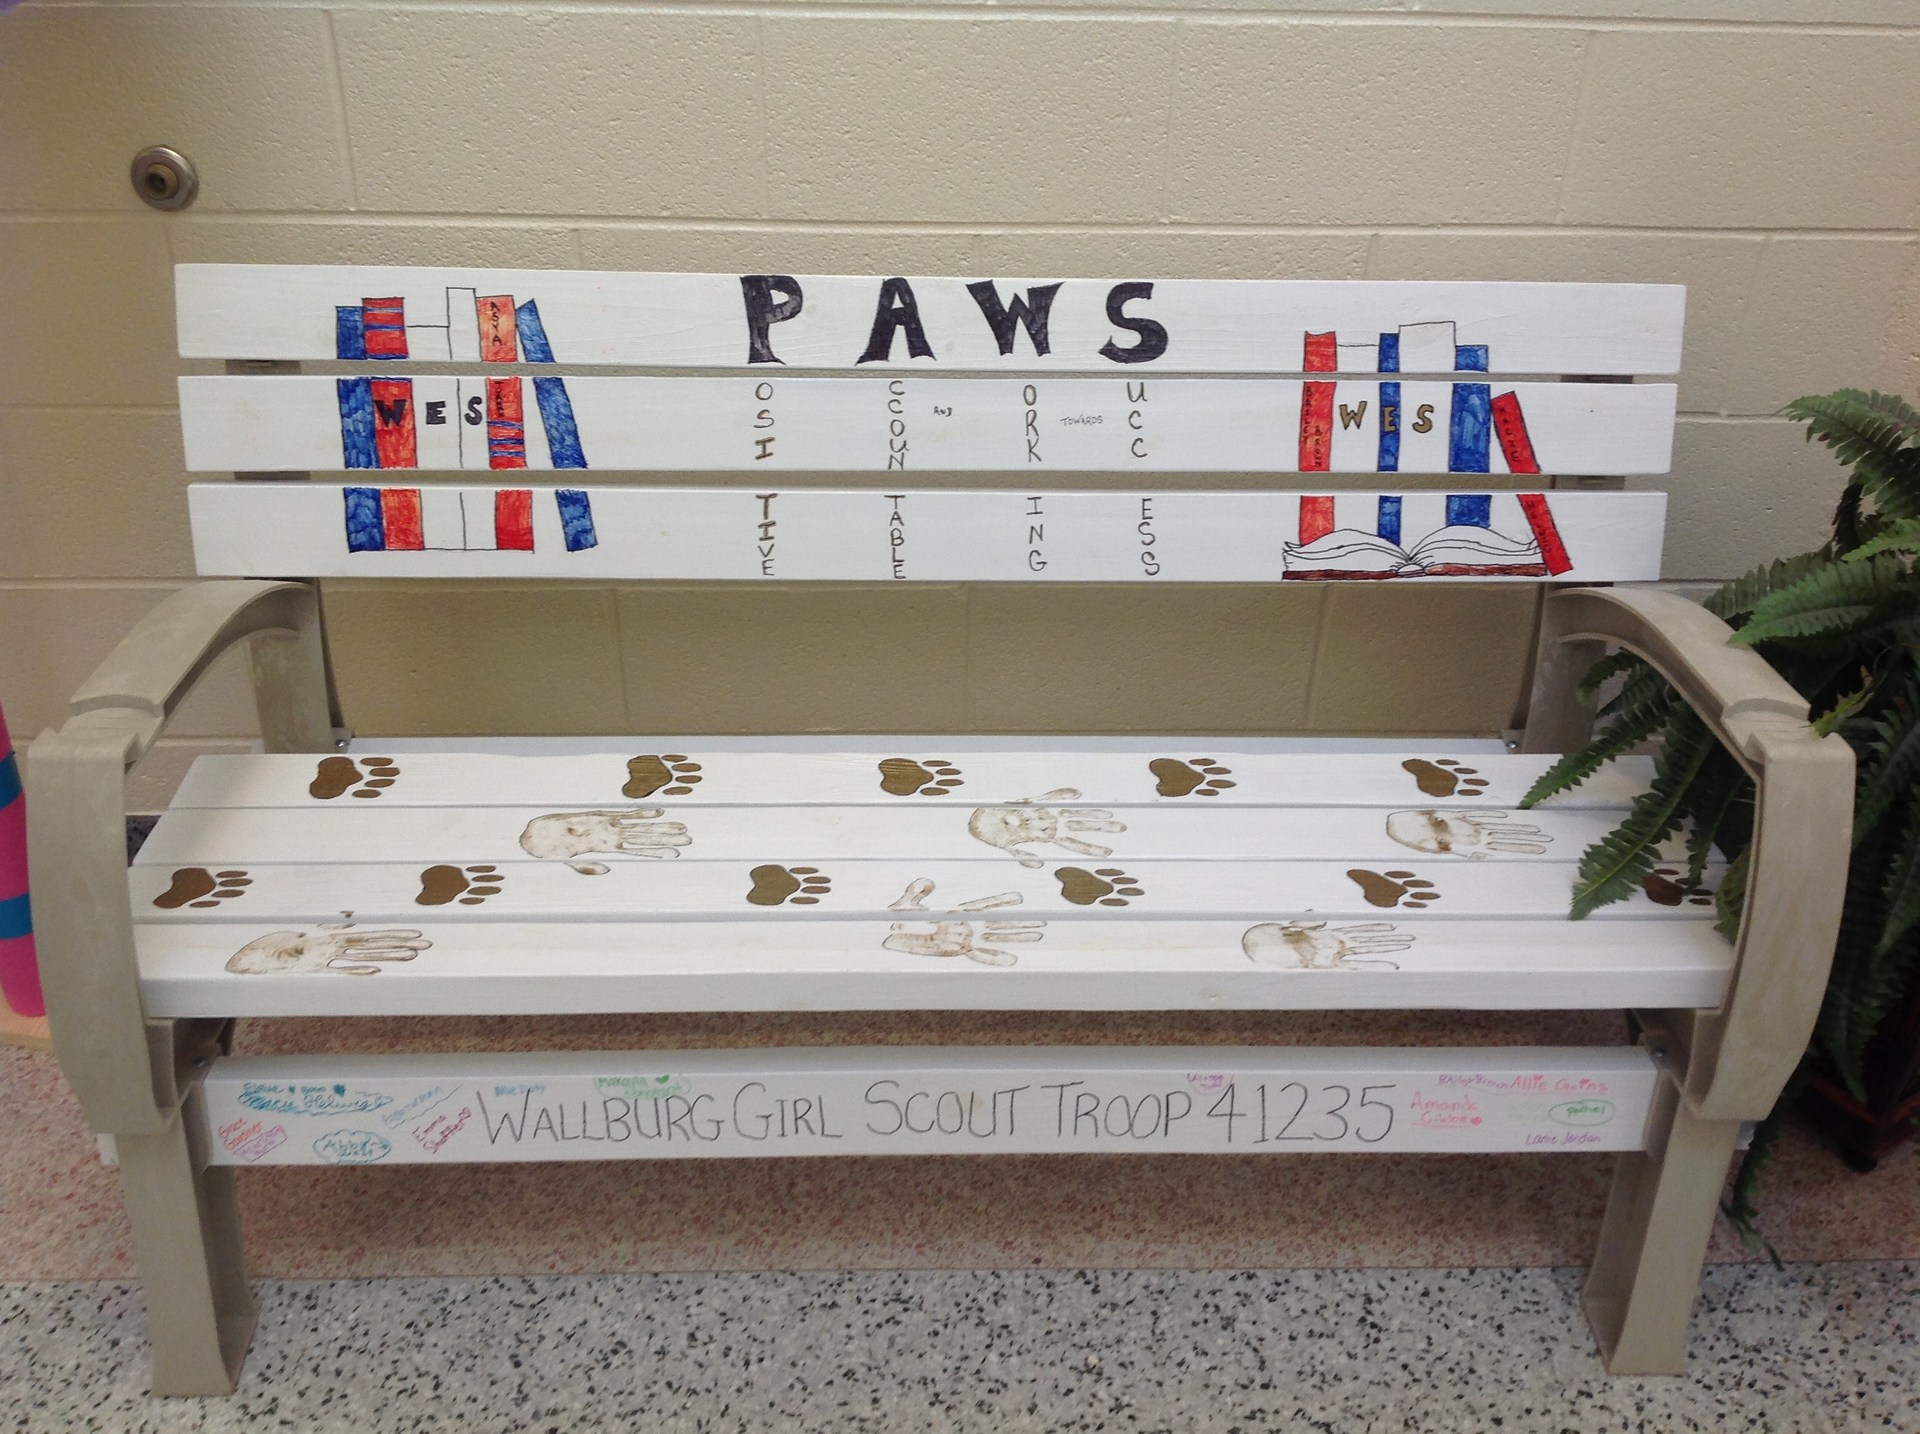 PAWS bench made by Girl Scouts